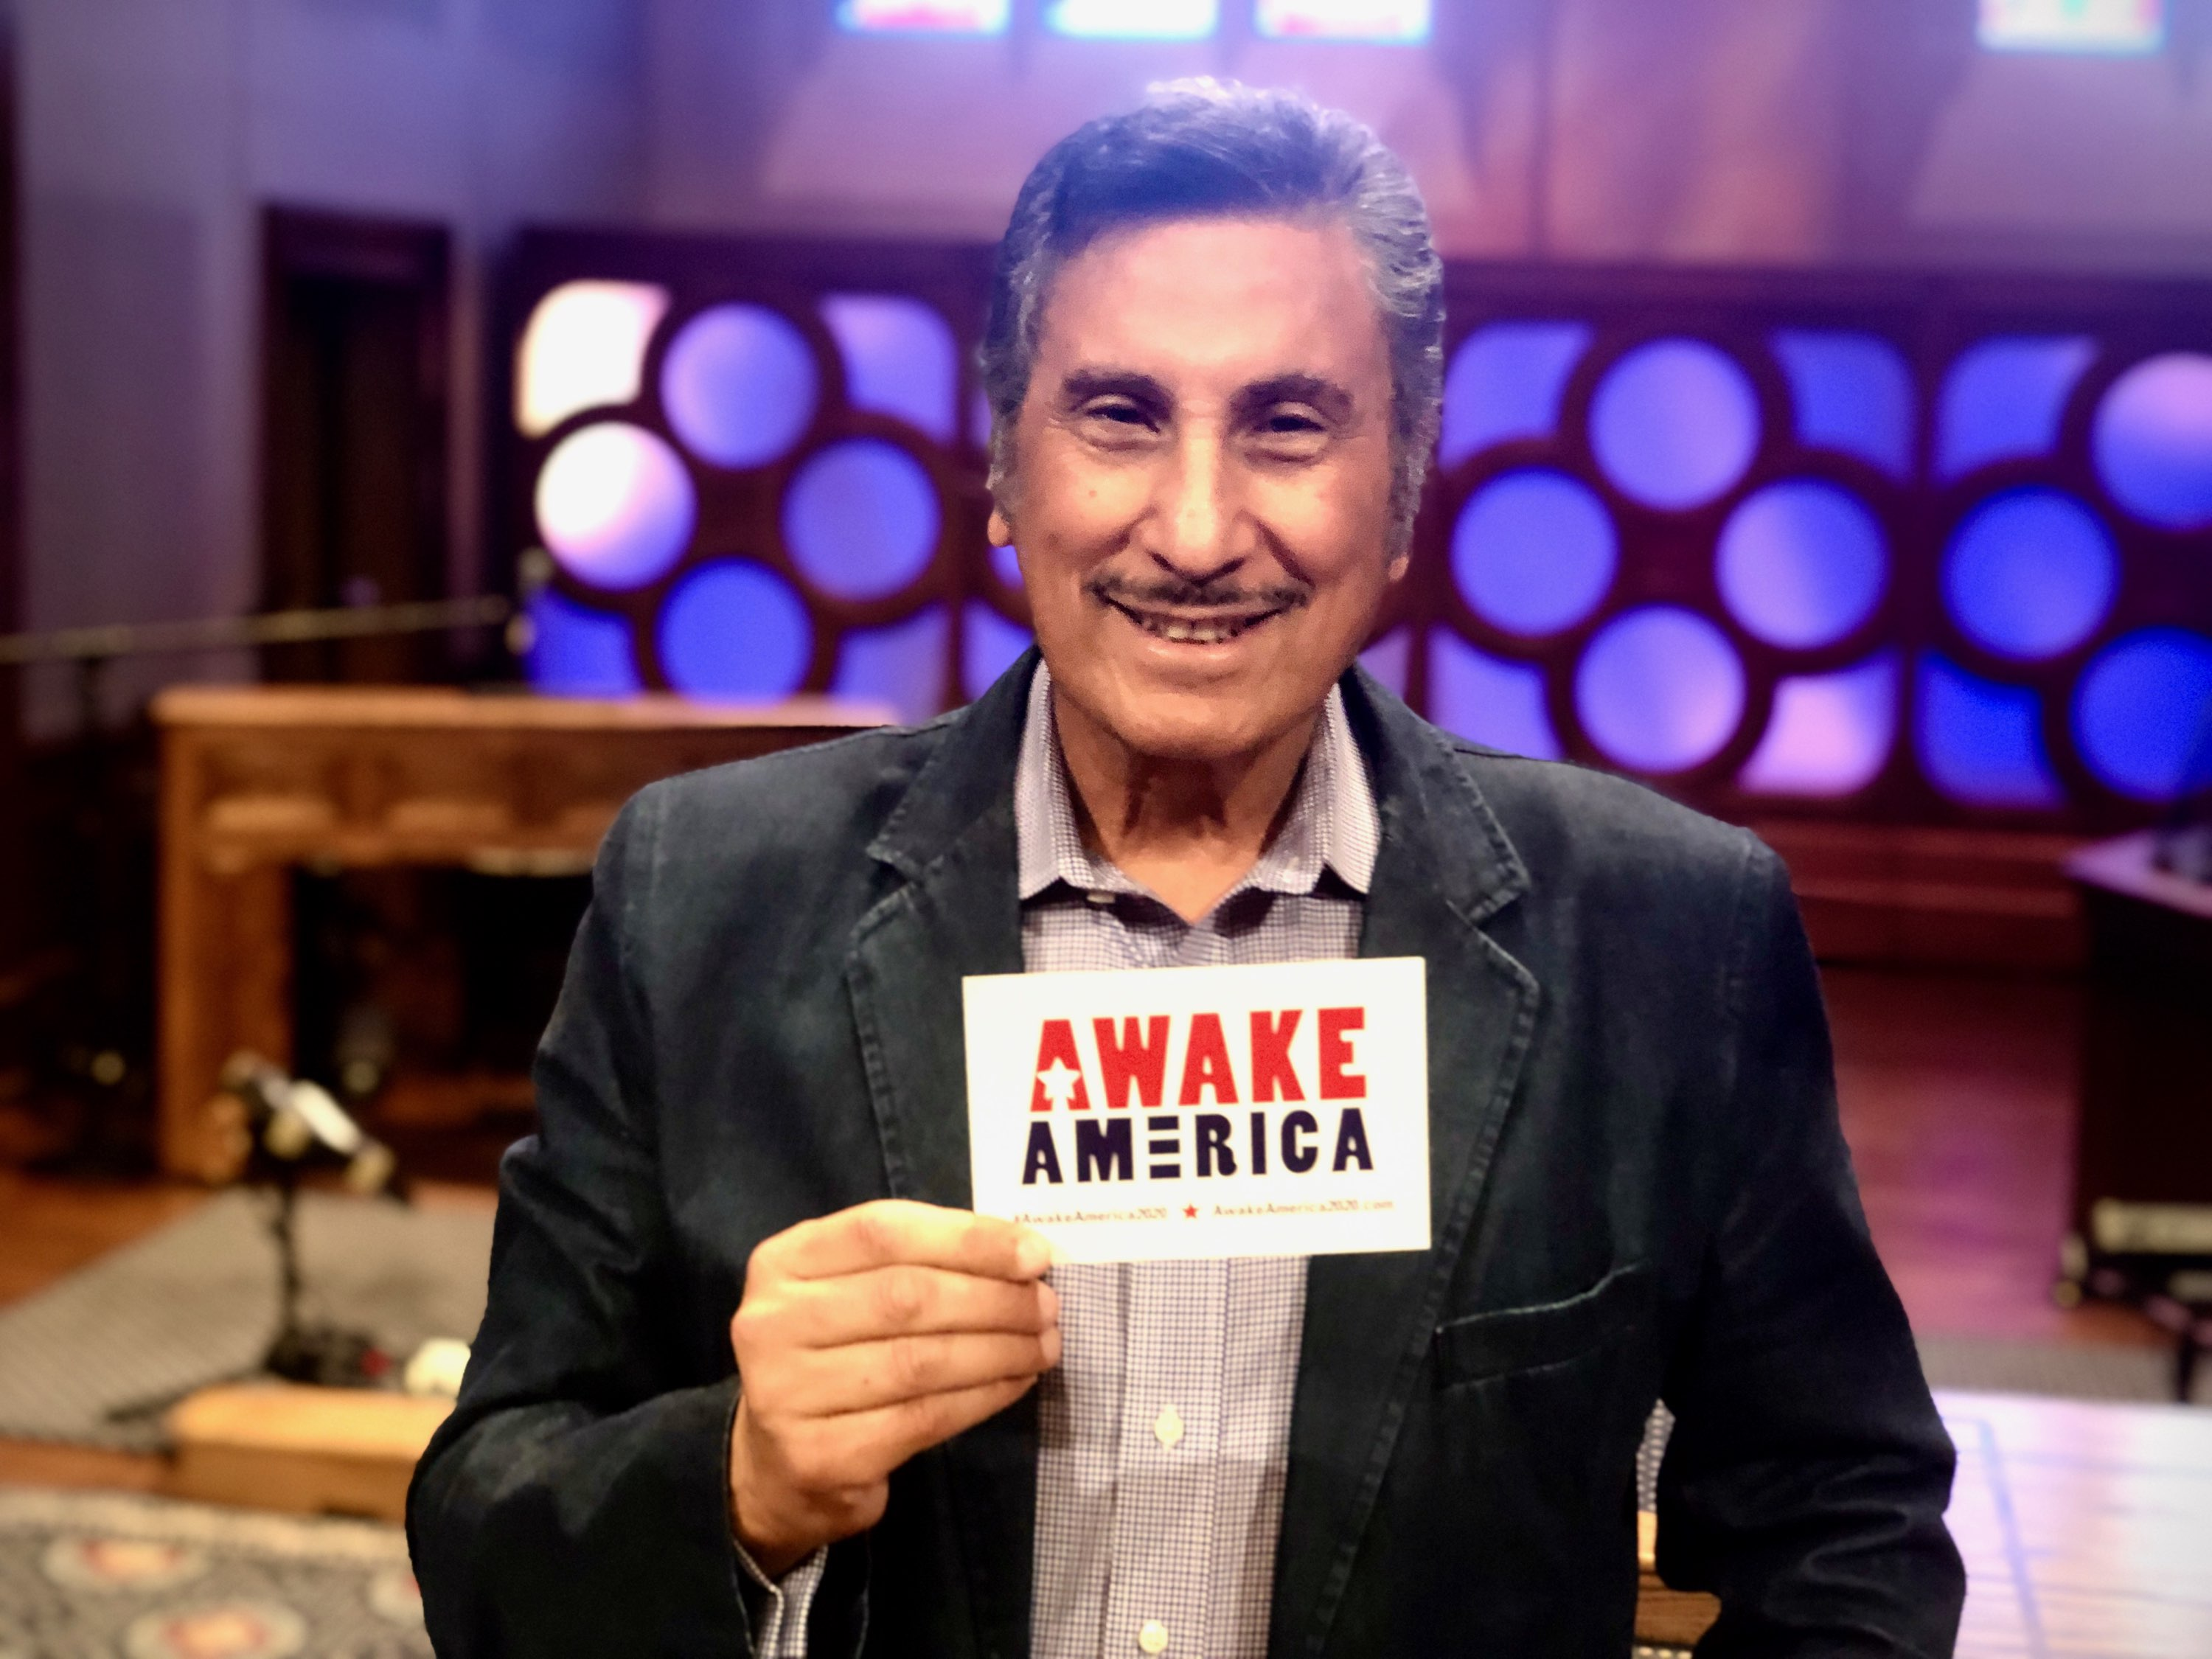 Dr. Michael Youssef Launches 'Awake America' Prayer Movement to Bring a Spiritual Awakening to the Nation During Coronavirus Plague